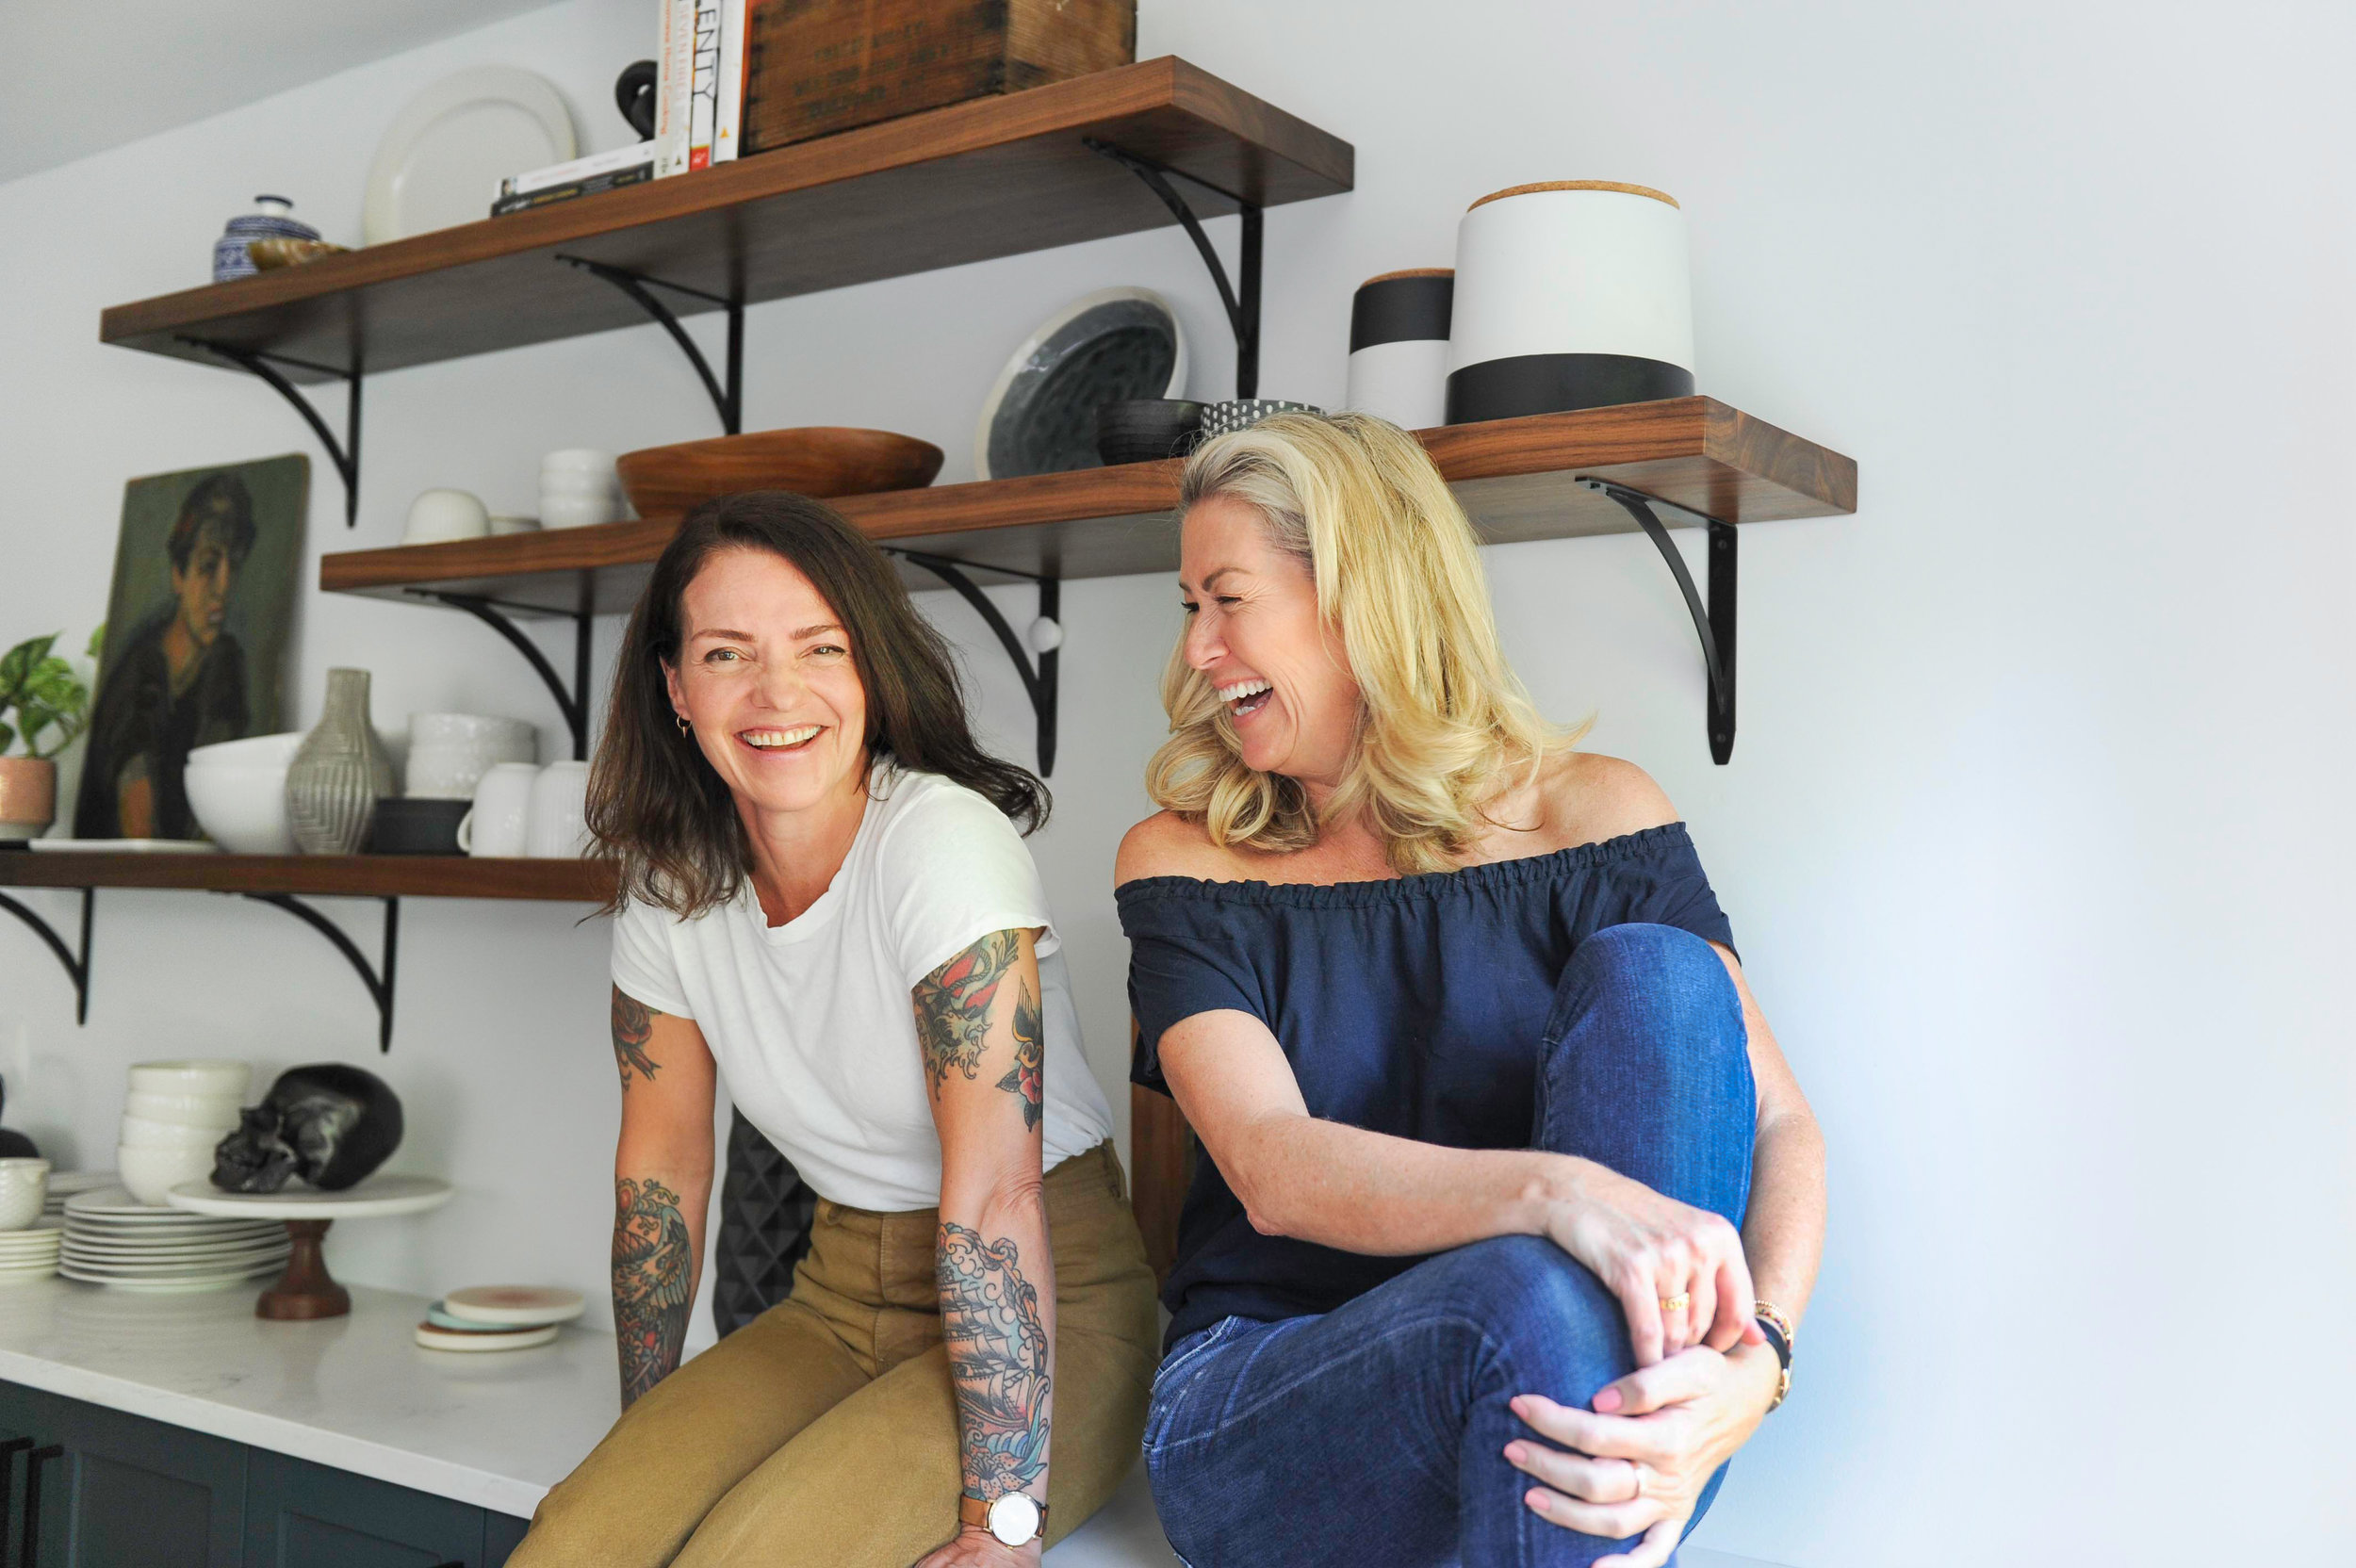 Greer & Jamie are sitting in the kitchen on white countertops in front of an array of wooden shelving with various decor, such as ceramic jars, cups and a wooden bowl. Greer is facing the camera while Jamie is looking to her right and they are both laughing.